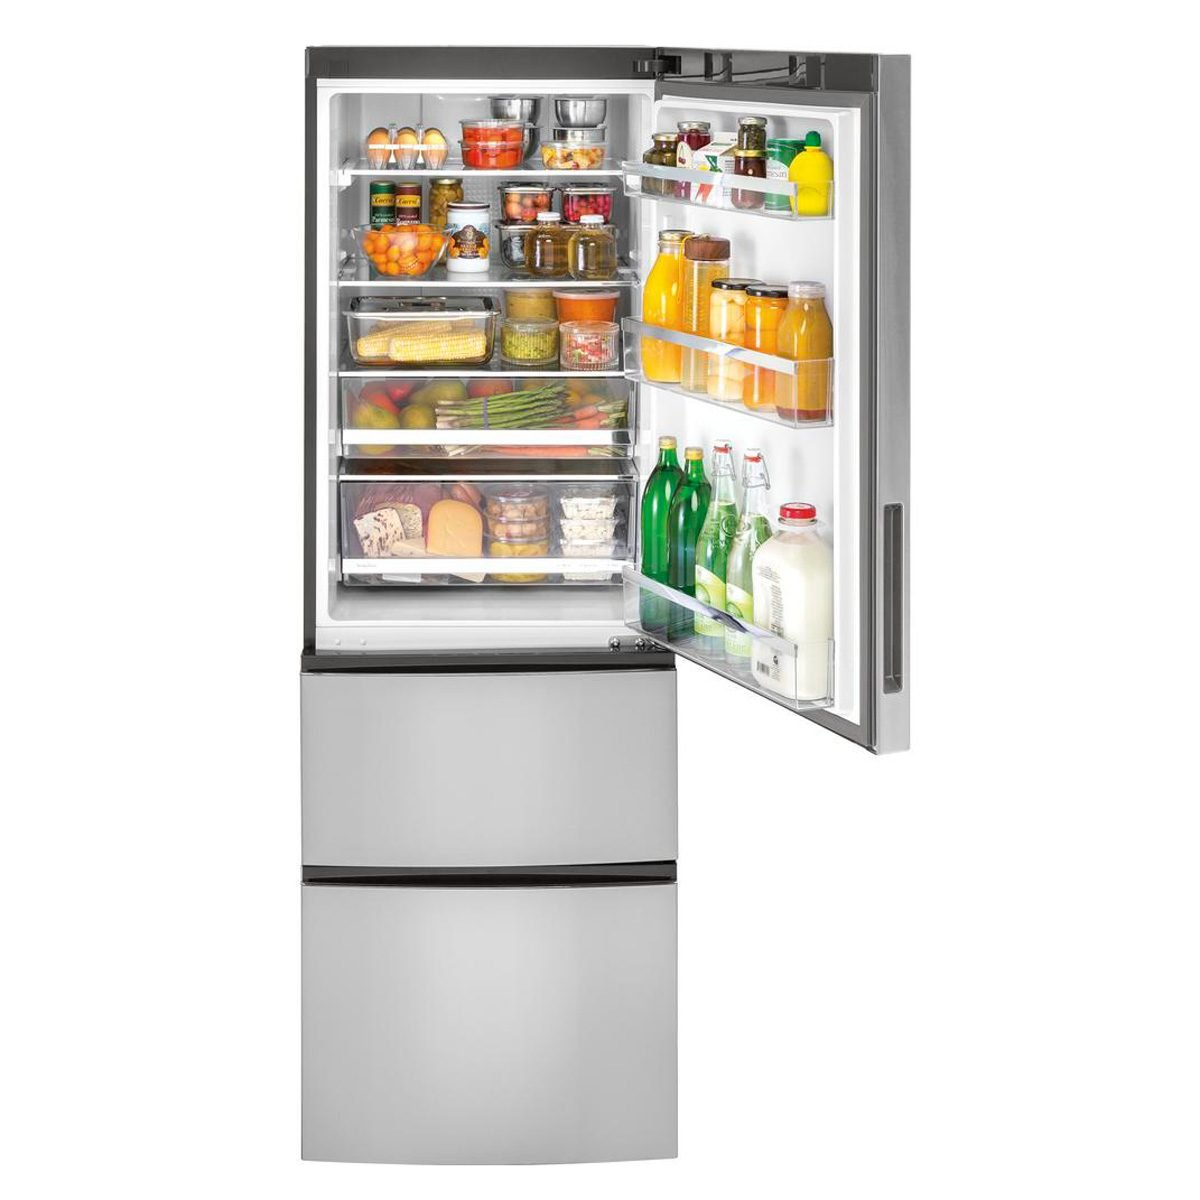 Best Appliances for Small Spaces